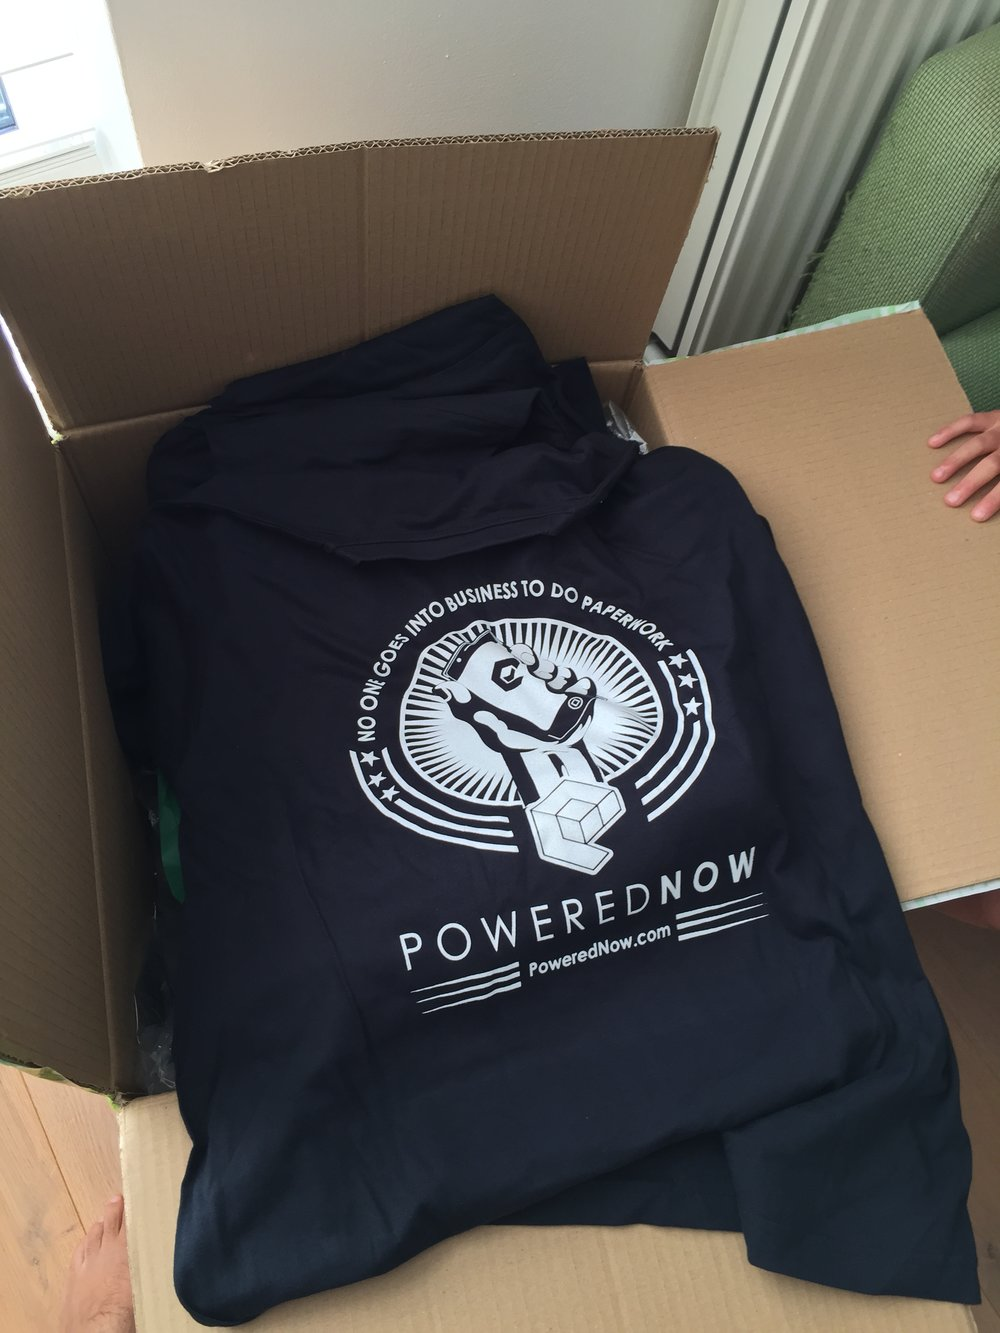 Our biggest outlay, a box of T-Shirts